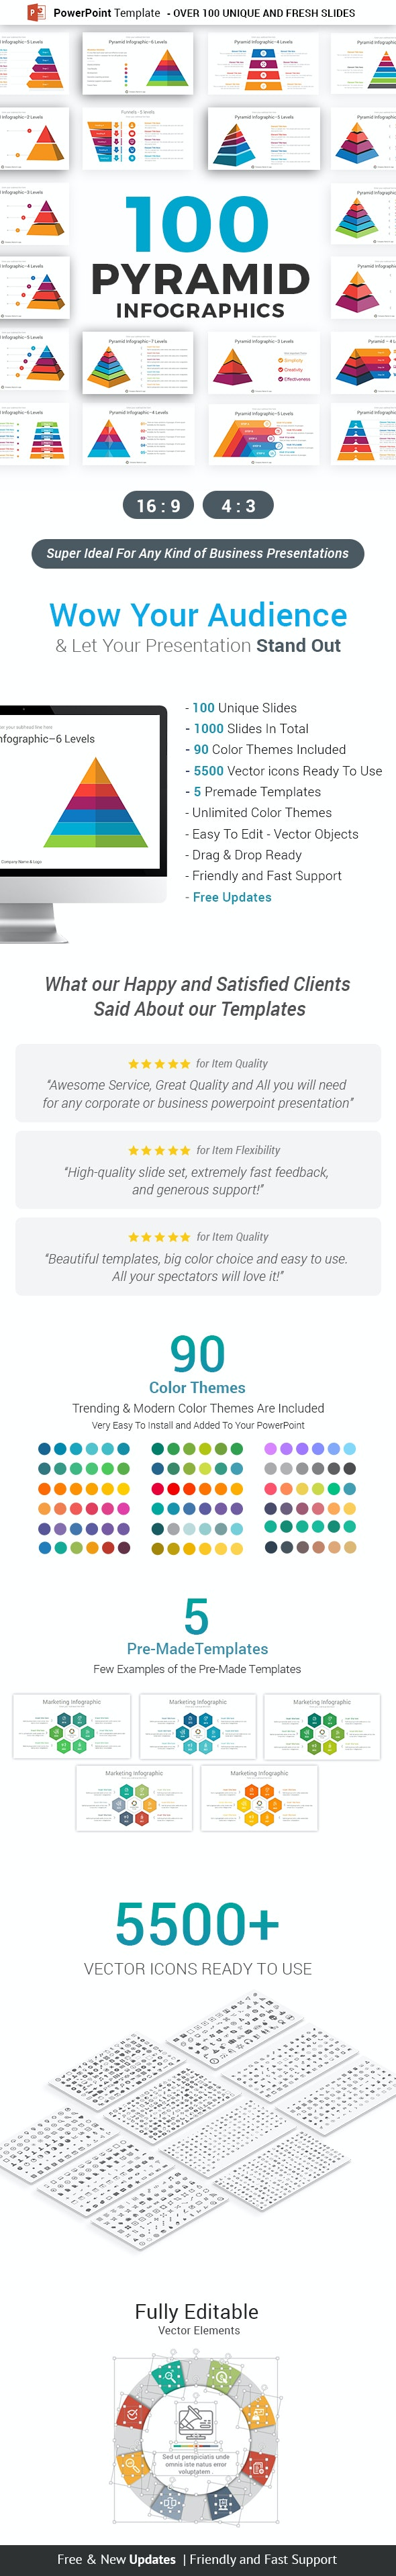 Pyramid Infographics PowerPoint Template diagrams - Business PowerPoint Templates